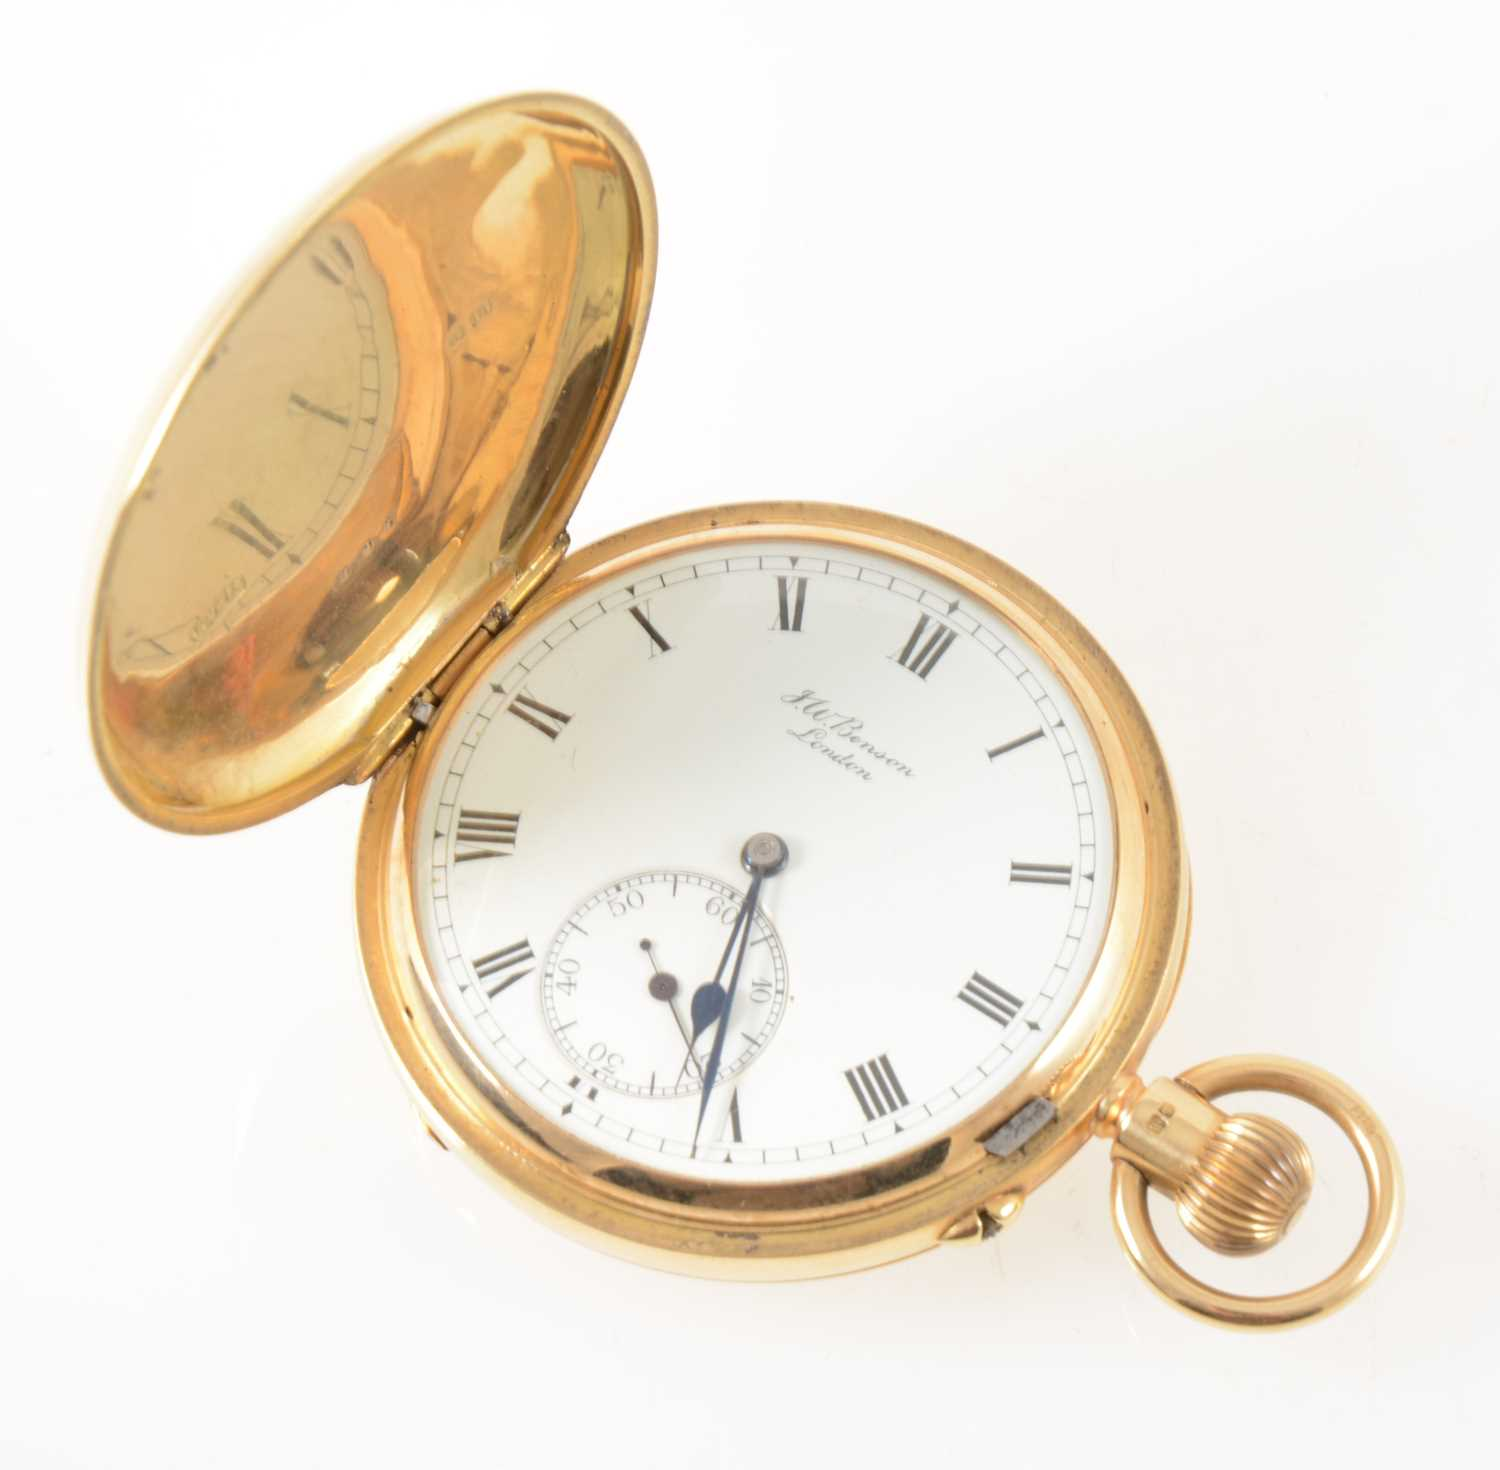 215 - J W Benson London - an 18 carat yellow gold full hunter pocket watch